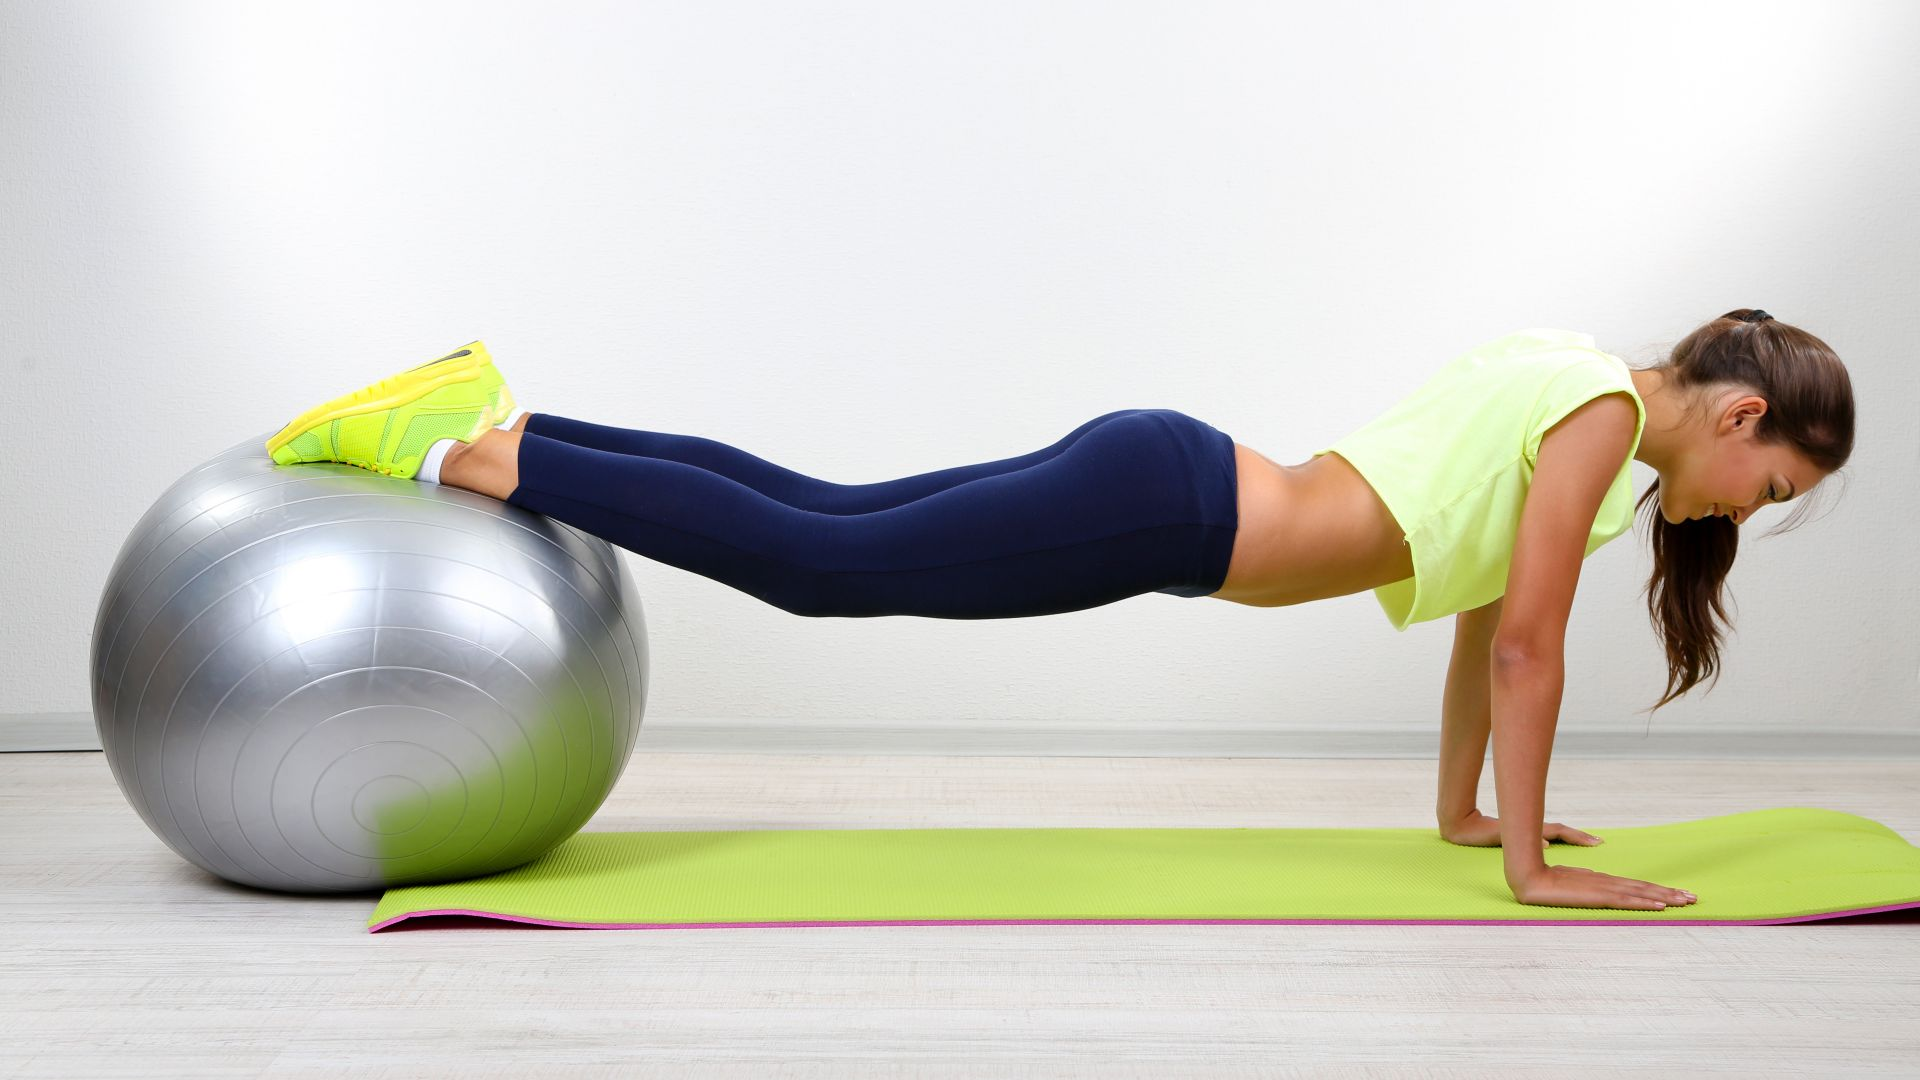 Girl, Training, exercise, weight loss, gym ball (horizontal)